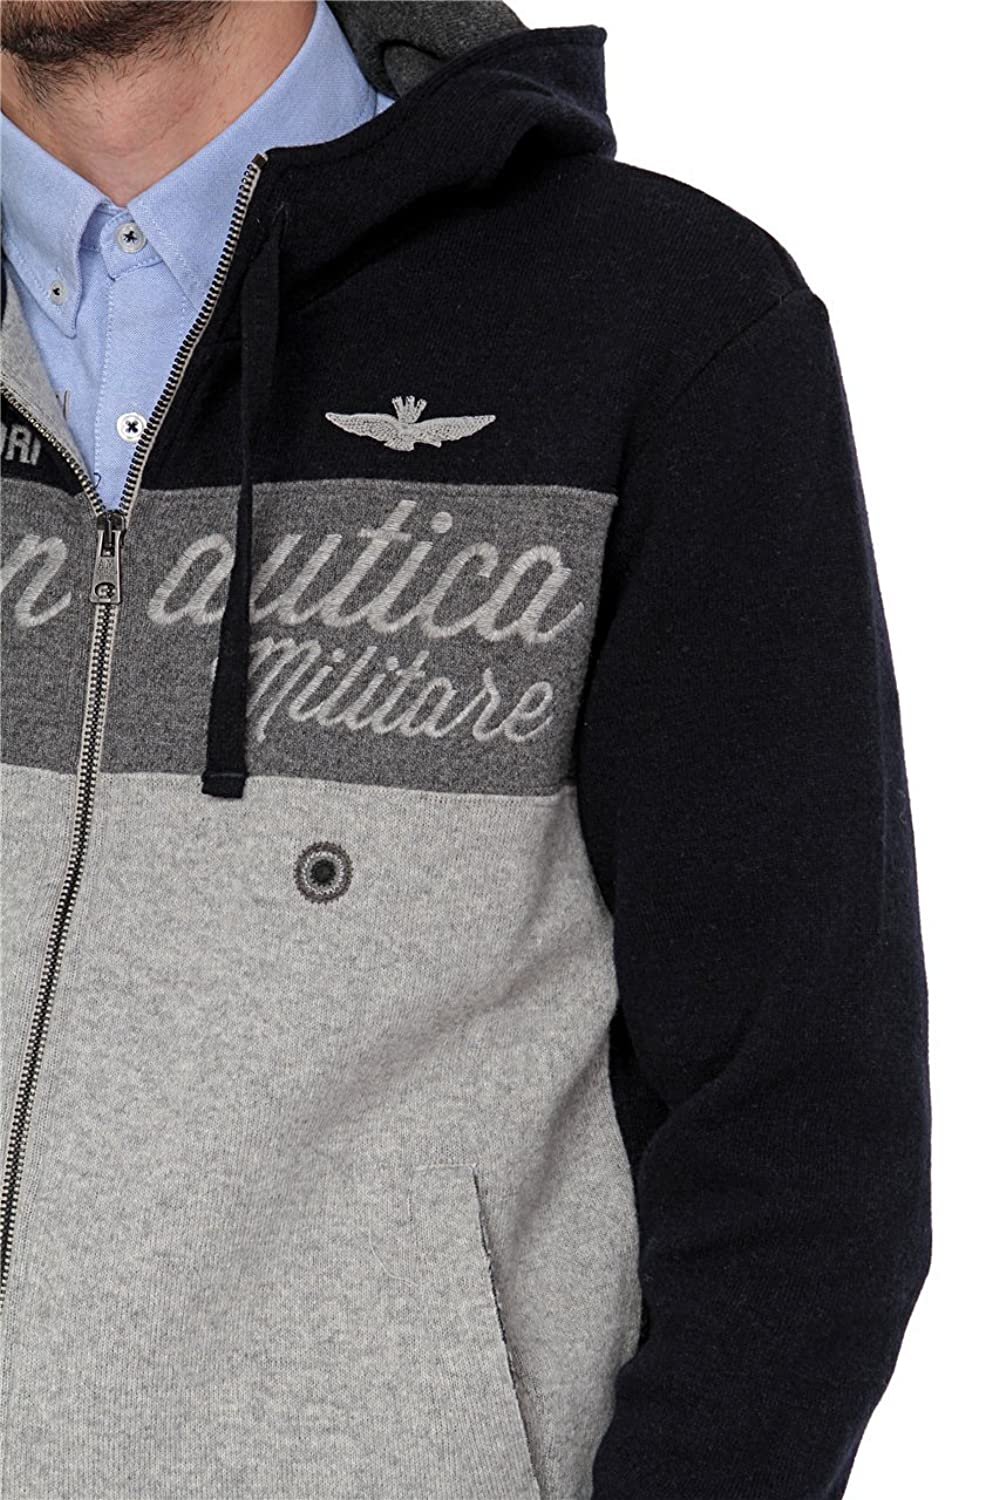 Aeronautica Militare Zip Through Hooded Sweatshirt, Color: Dark blue